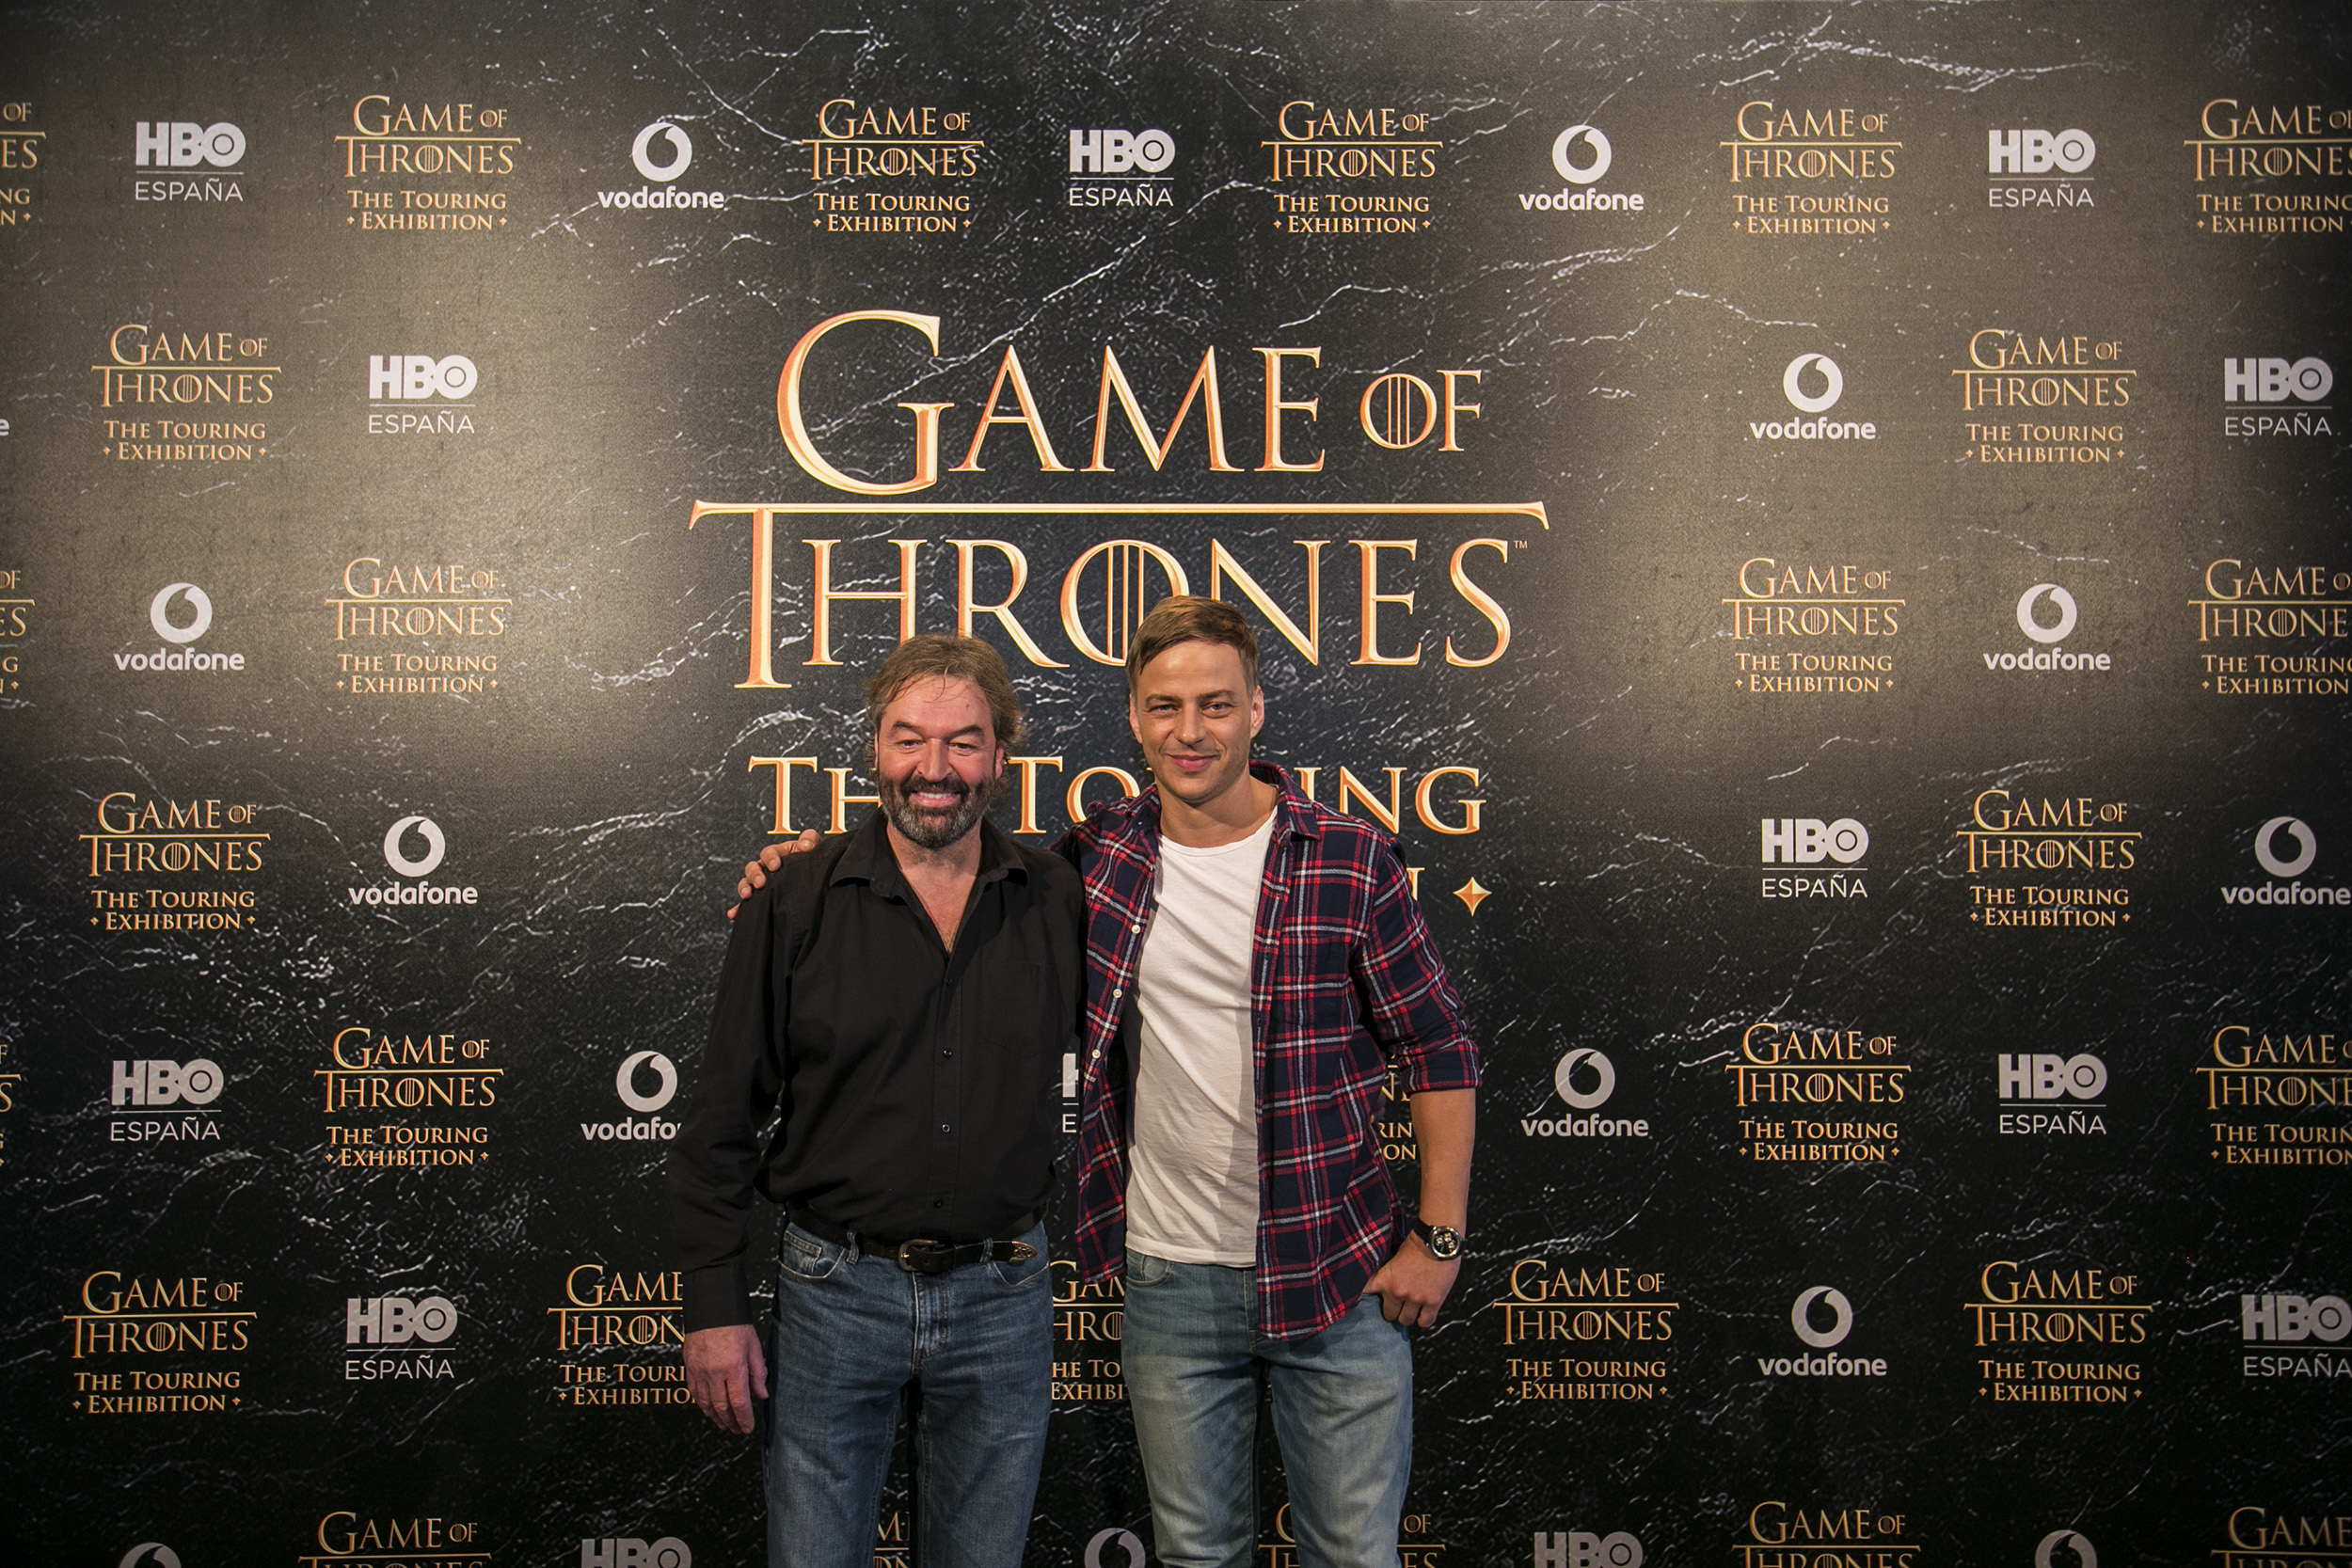 Ian Beattie and Tom Wlaschiha at GAME OF THRONES®: The Touring Exhibition